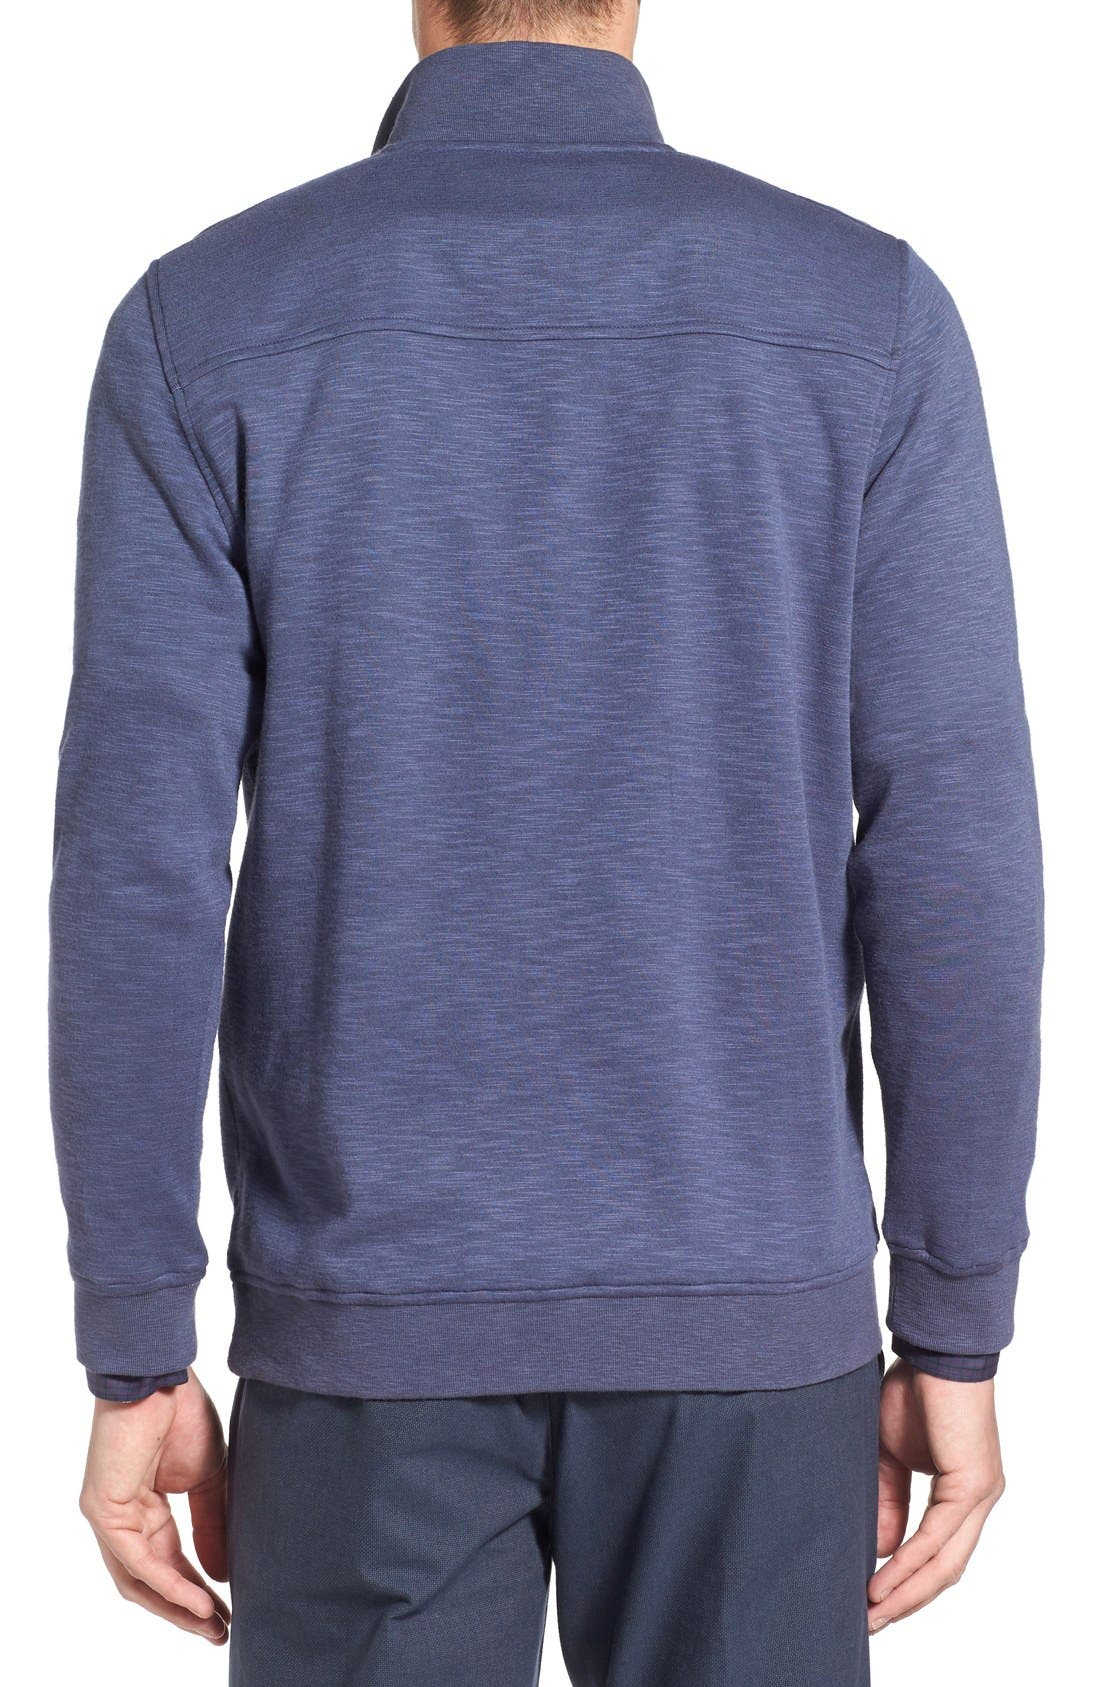 'Mandra' Quarter Zip Pullover,                             Alternate thumbnail 2, color,                             Dark Blue